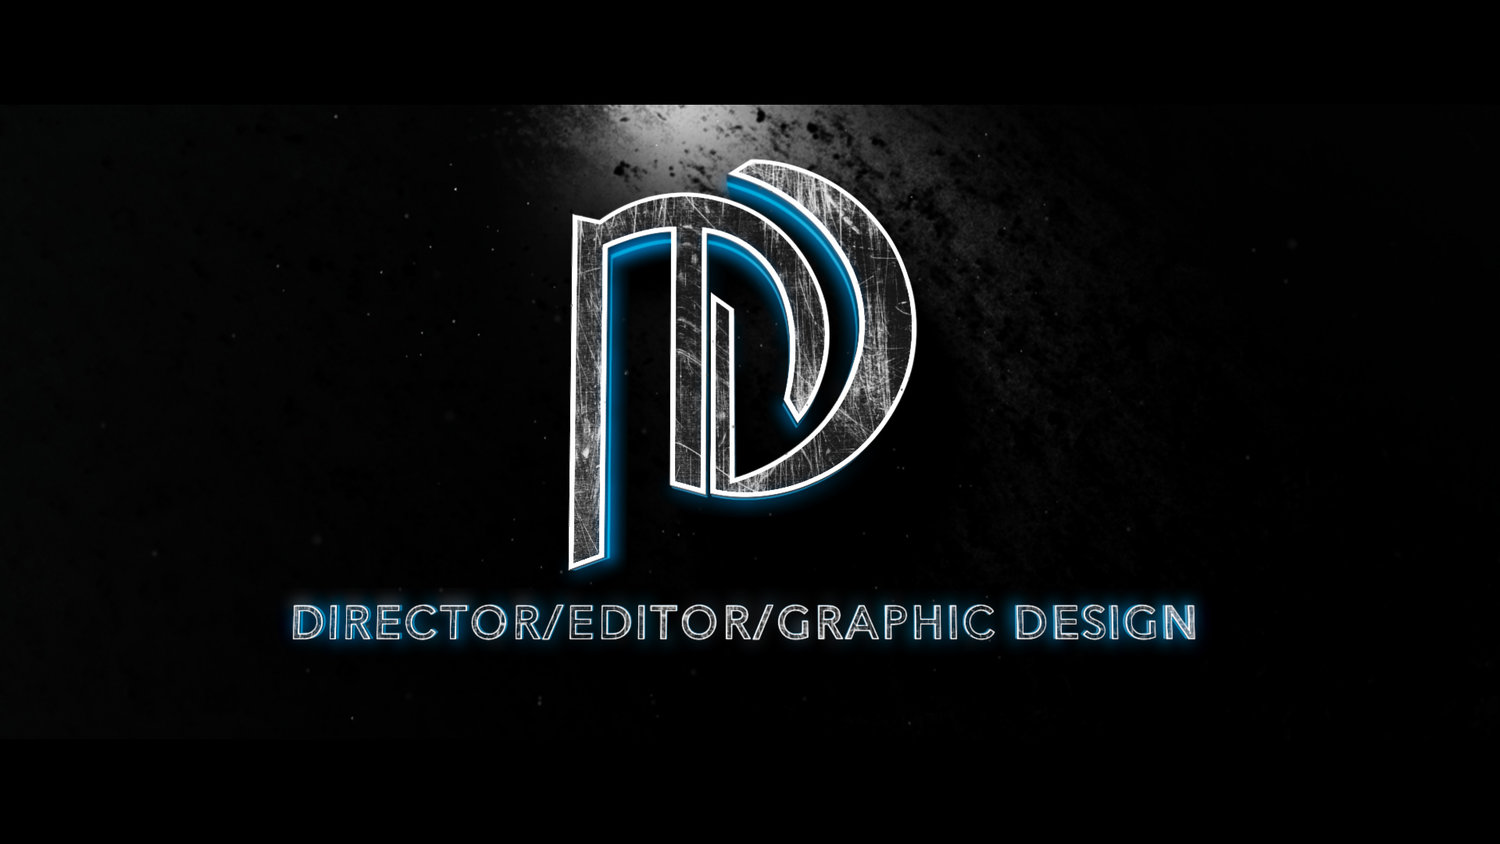 Mal Deegan. Director Editor Graphic Design